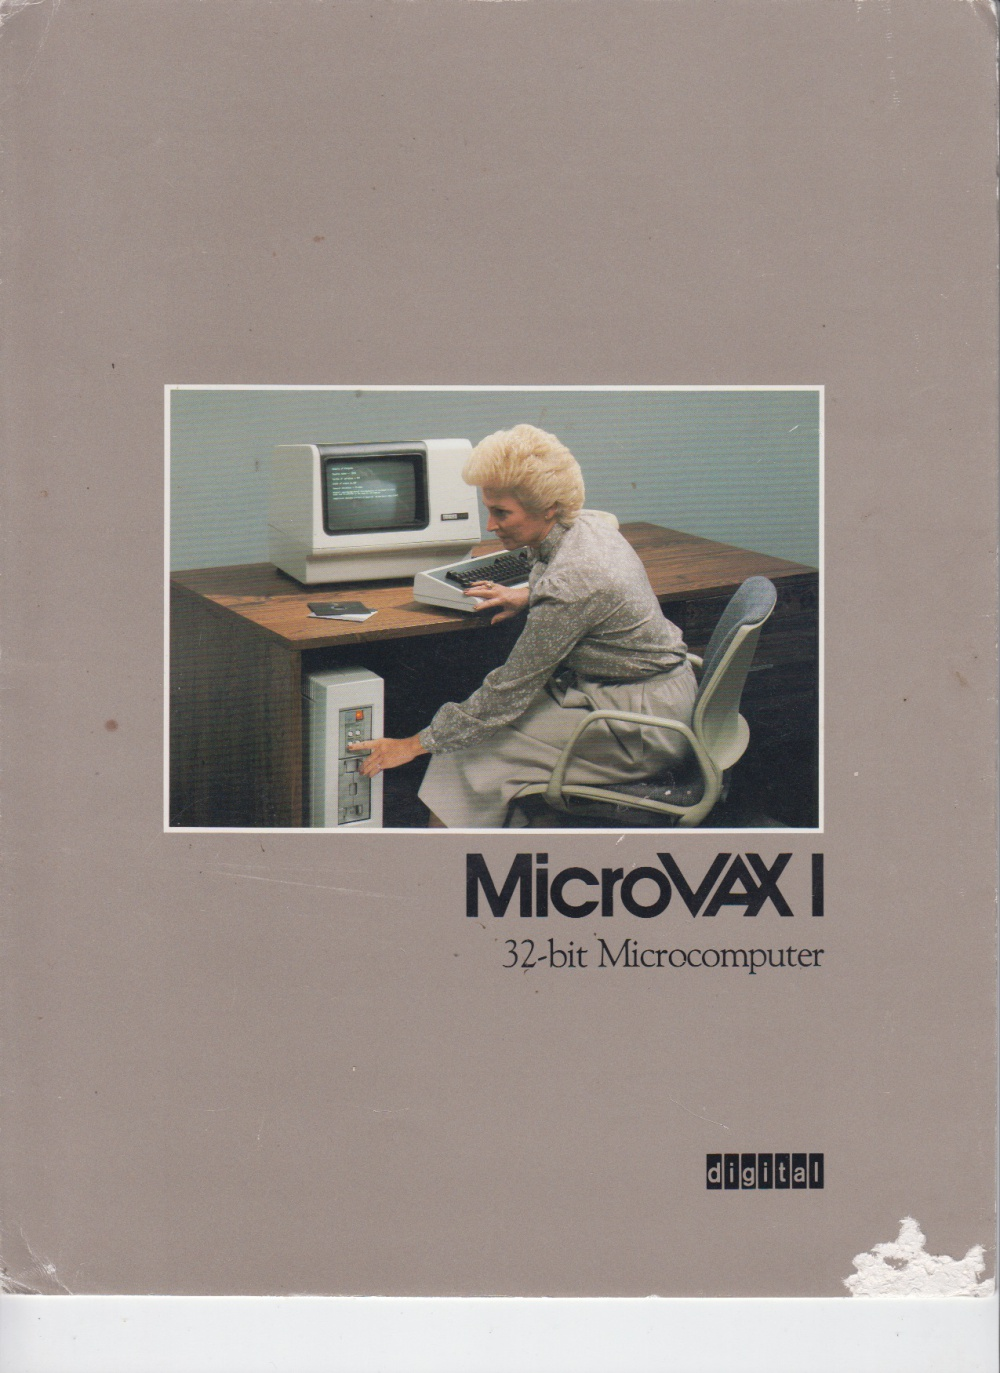 Scan of Document: MicroVAX 1 - 32-Bit Microcomputer